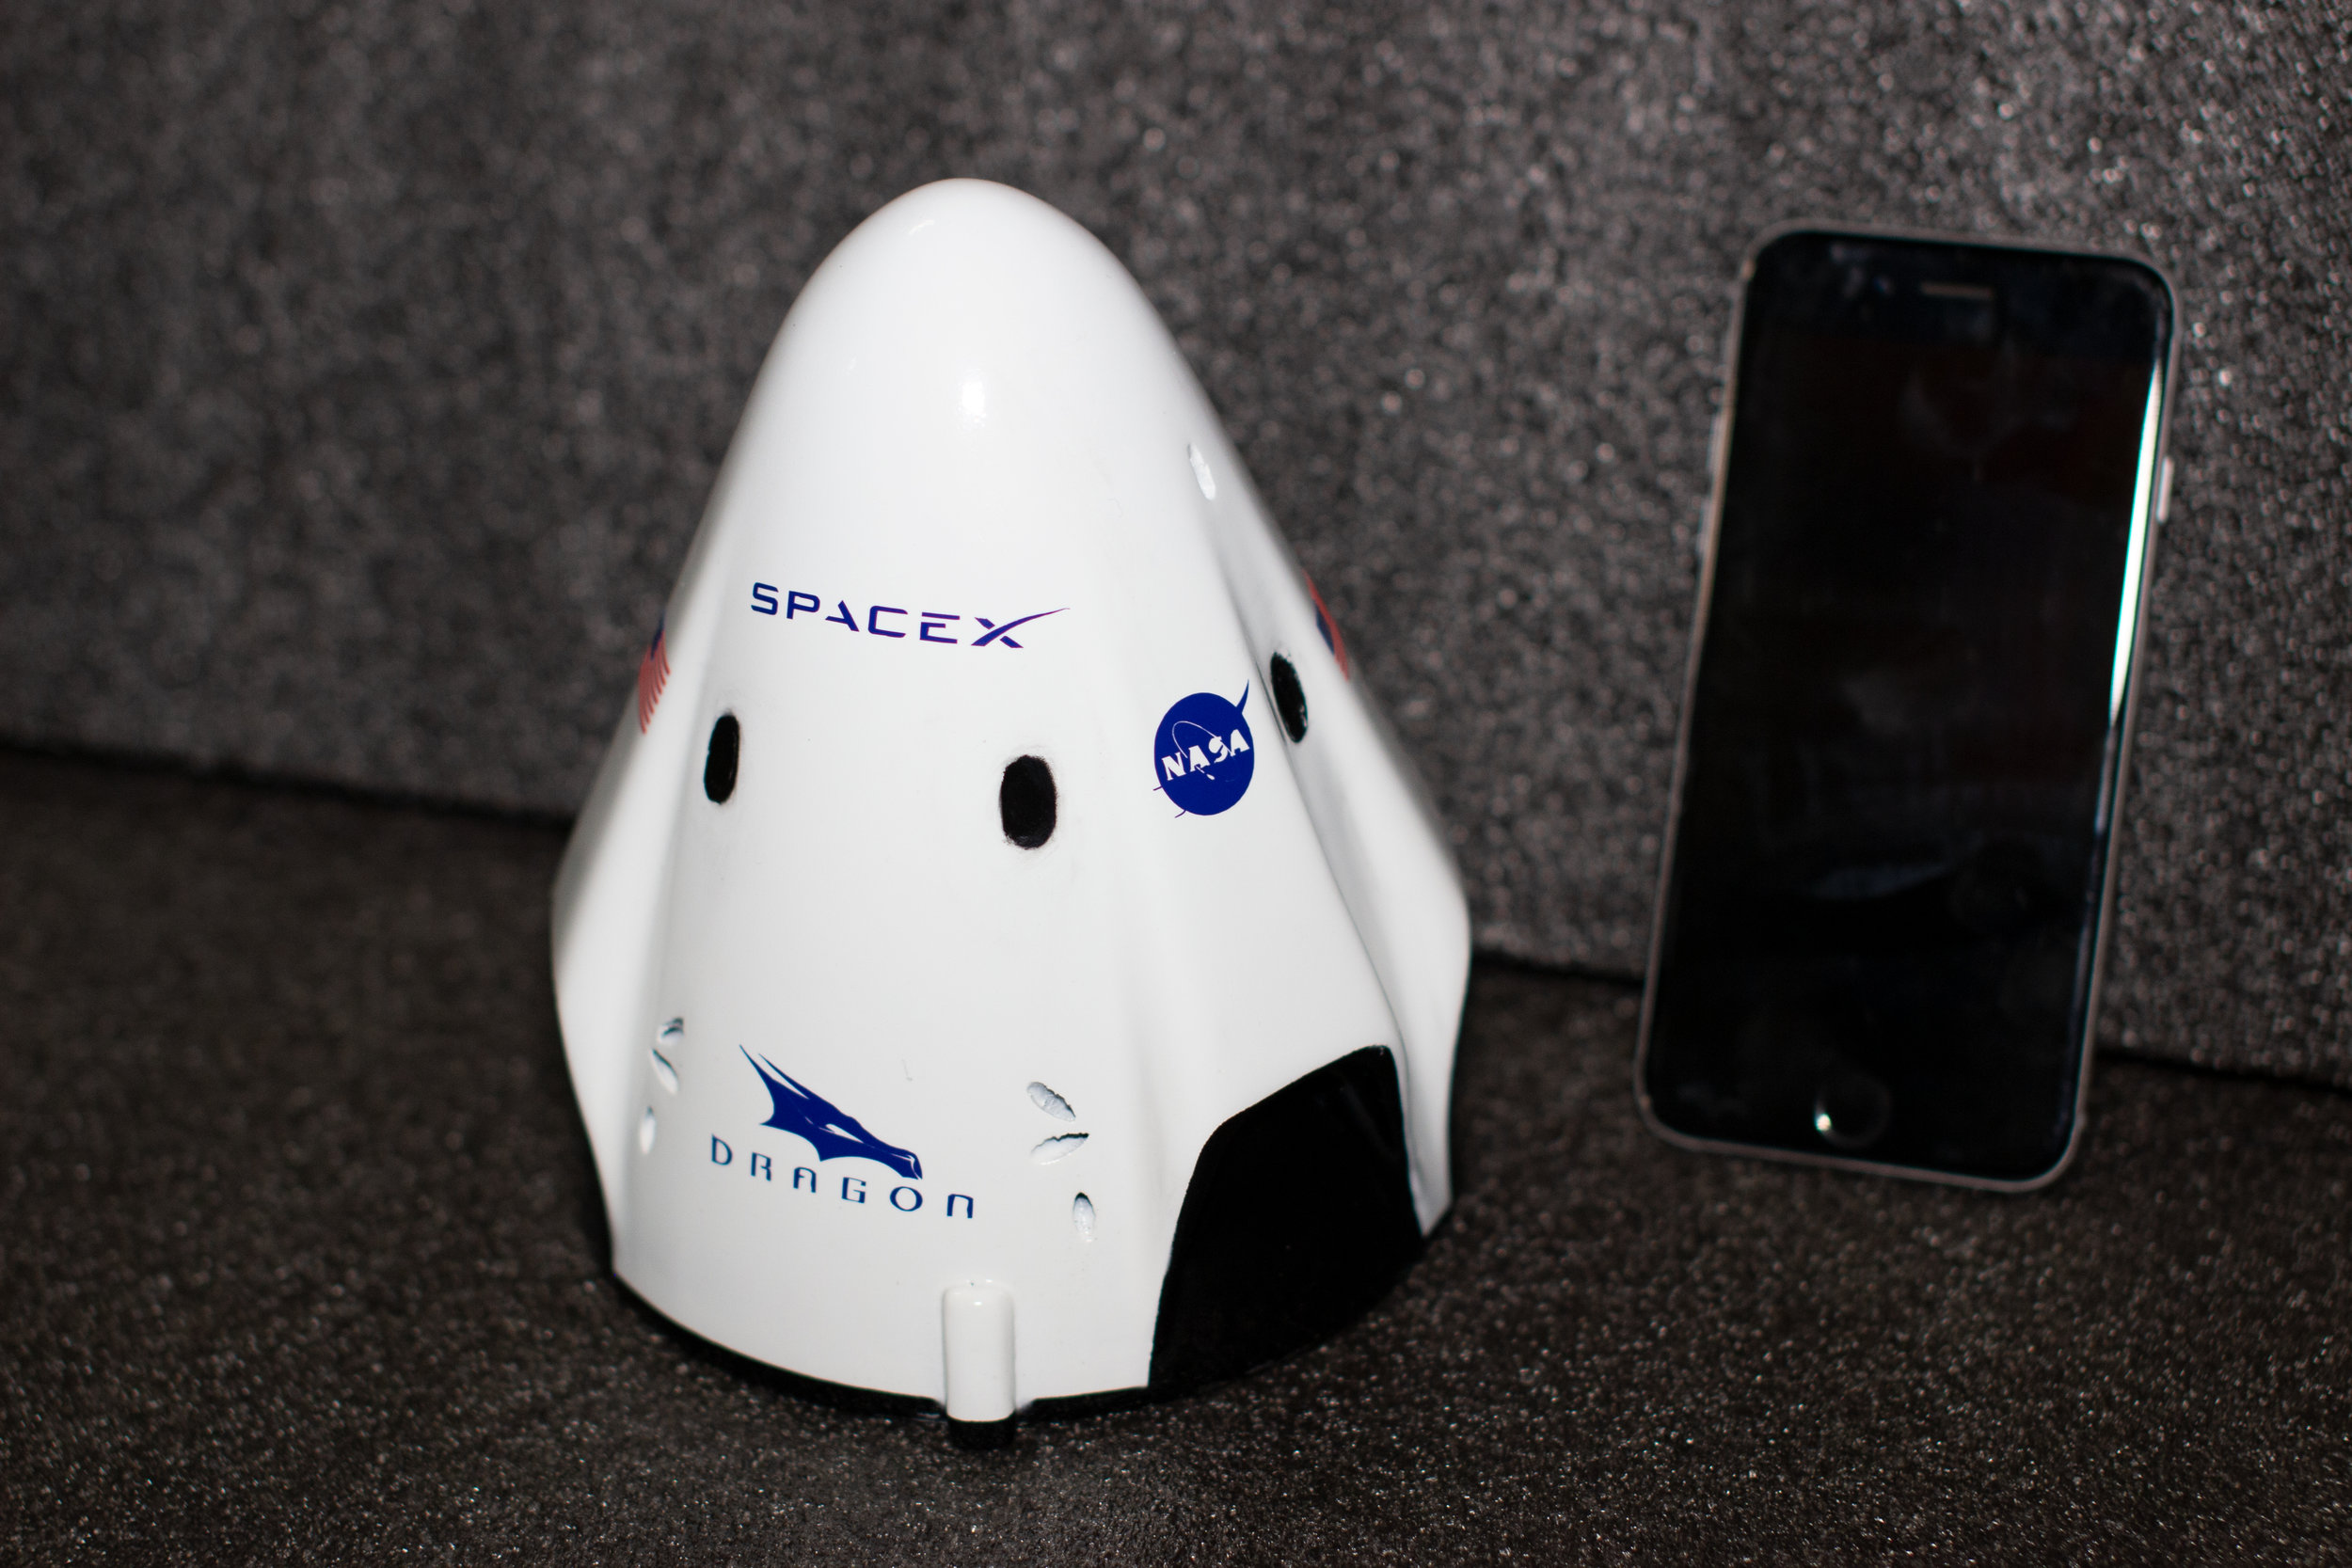 Space X Dragon Crew Capsula $400 - Pintada & Logos- 6.3in (16cm)